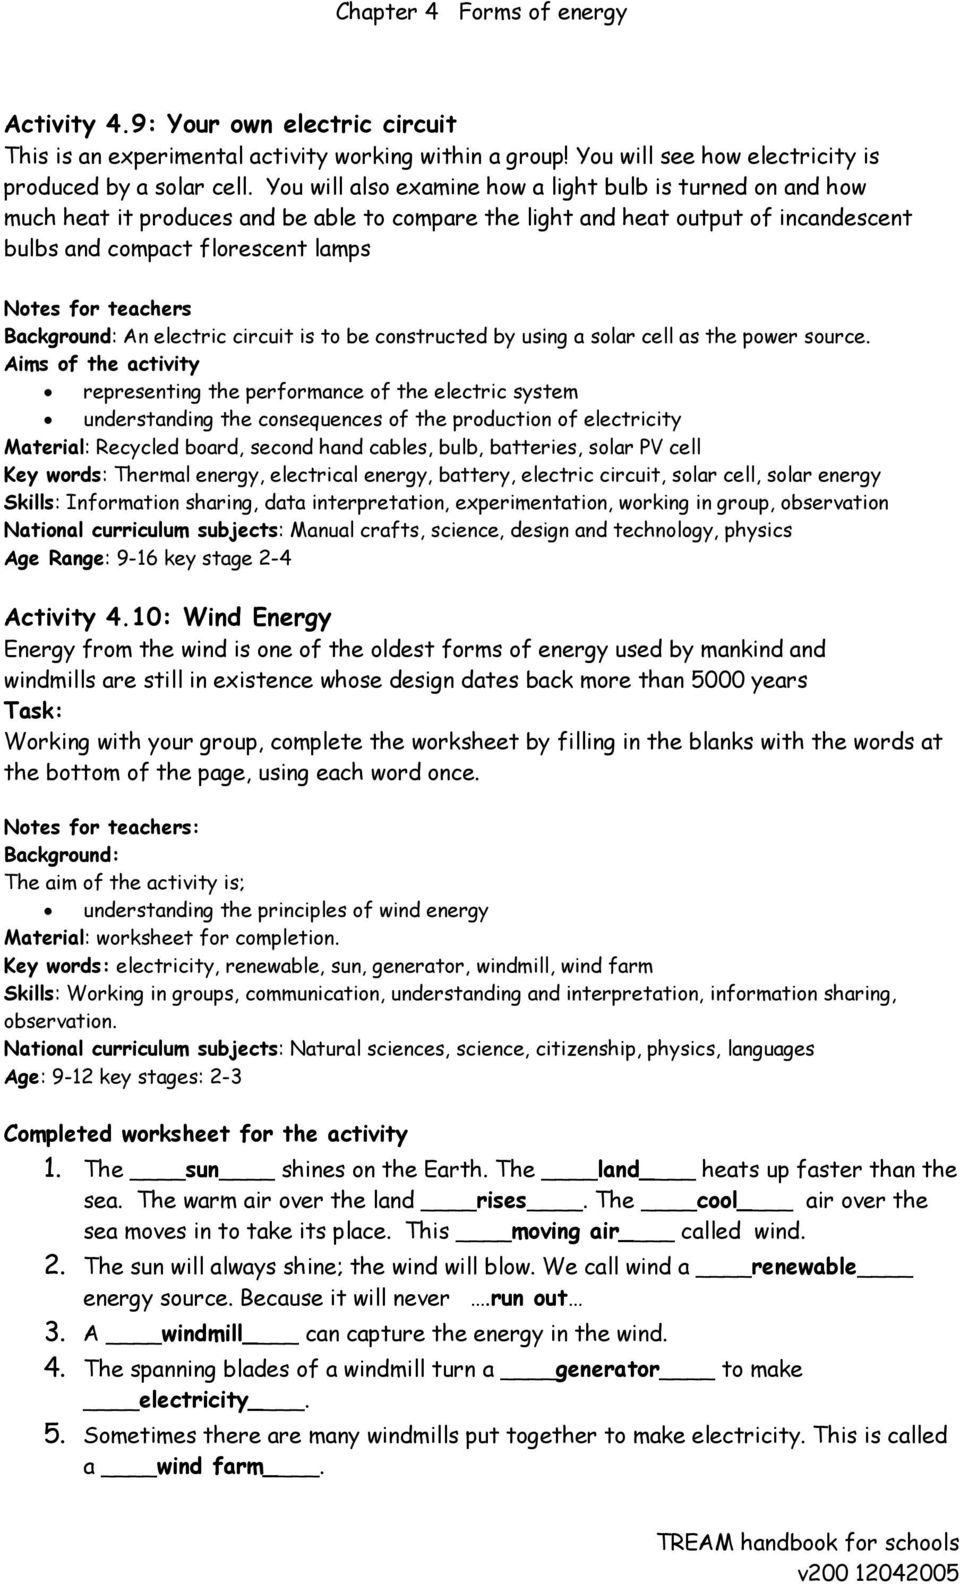 Chapter 4 Forms of energy - PDF